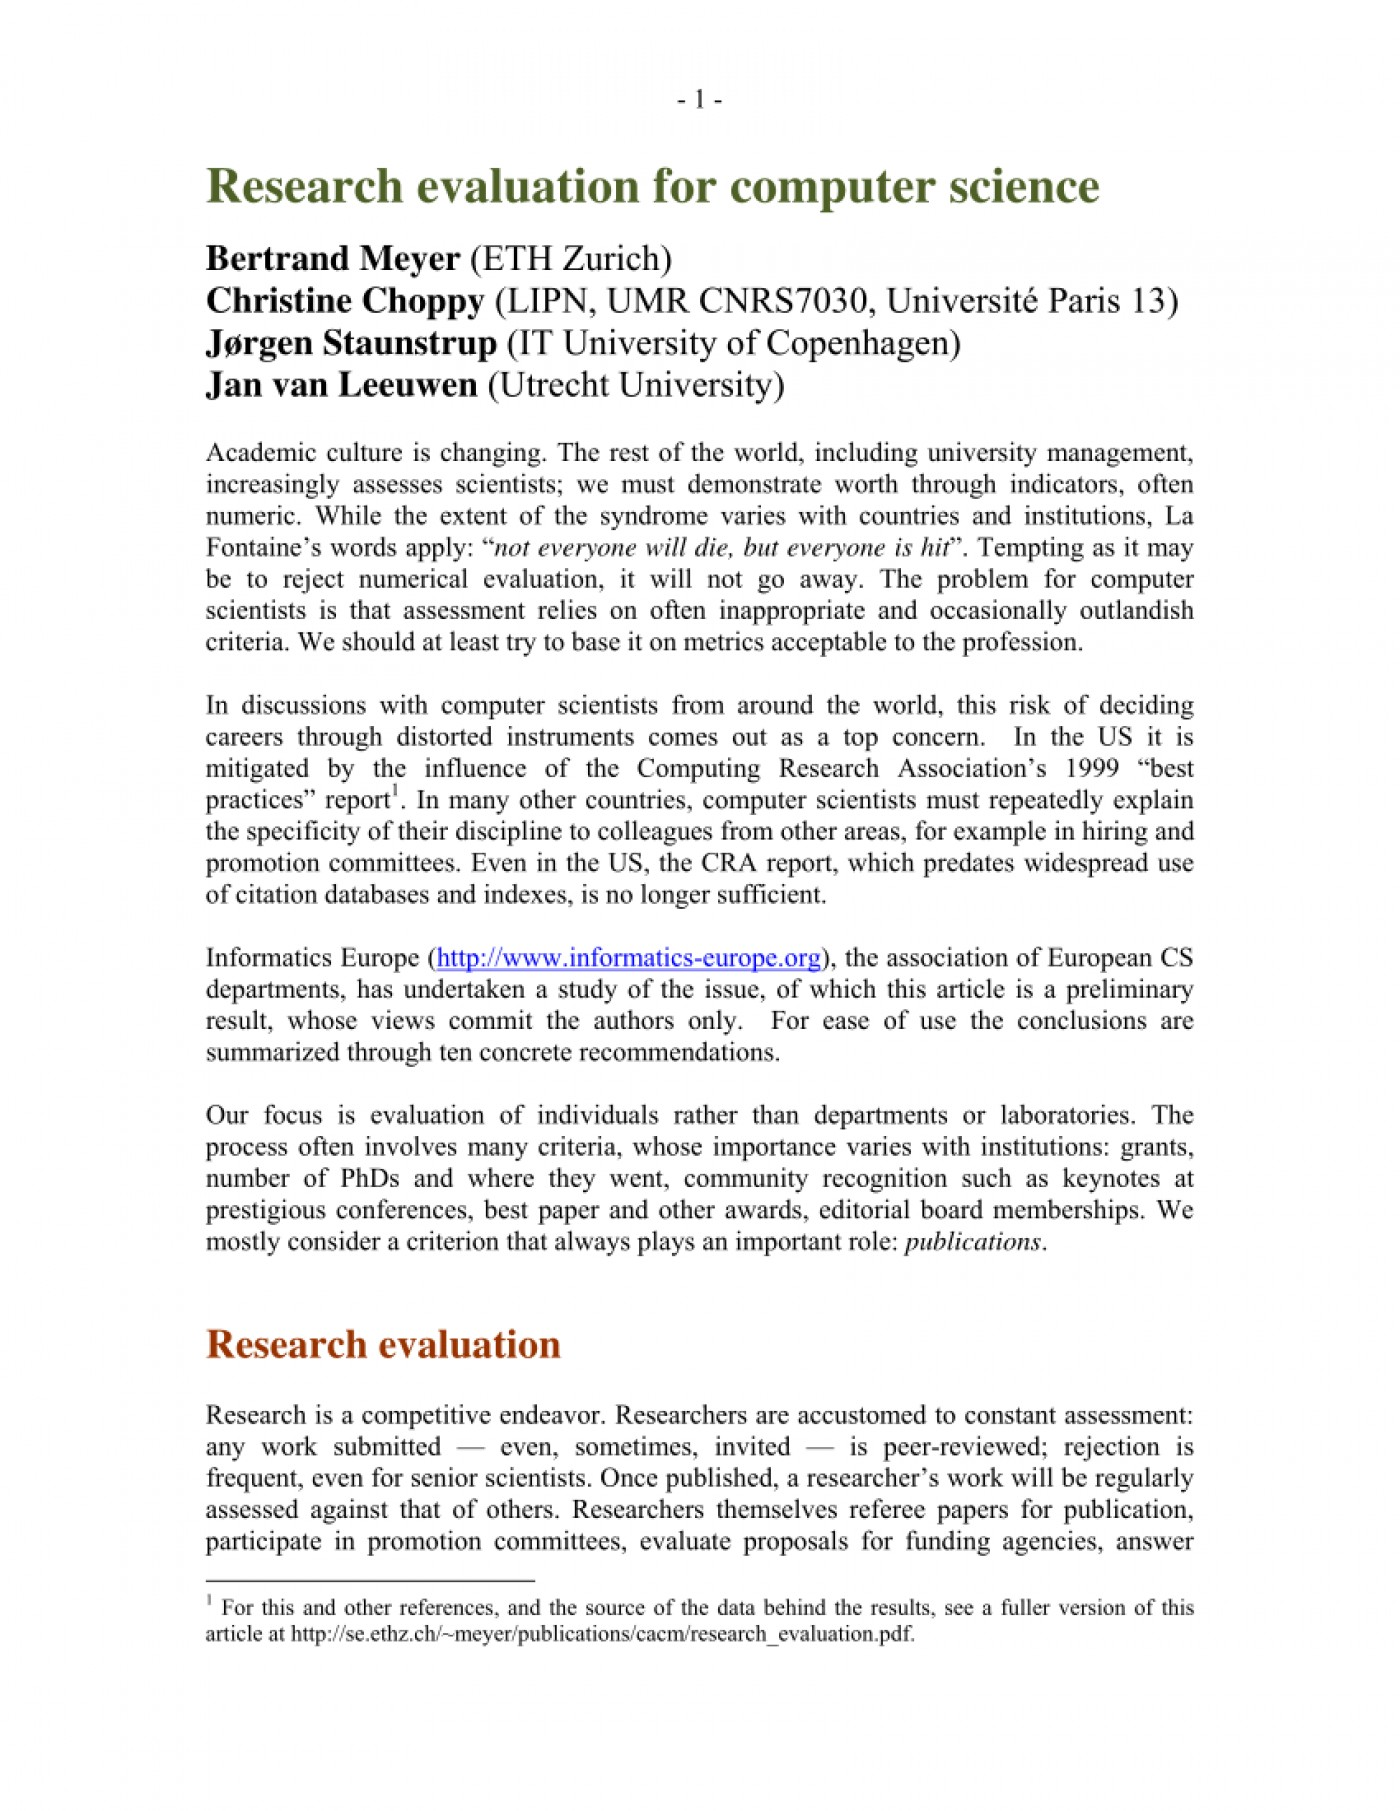 004 Largepreview Published Research Breathtaking Paper About Bullying Papers In Artificial Intelligence Mathematics 1400